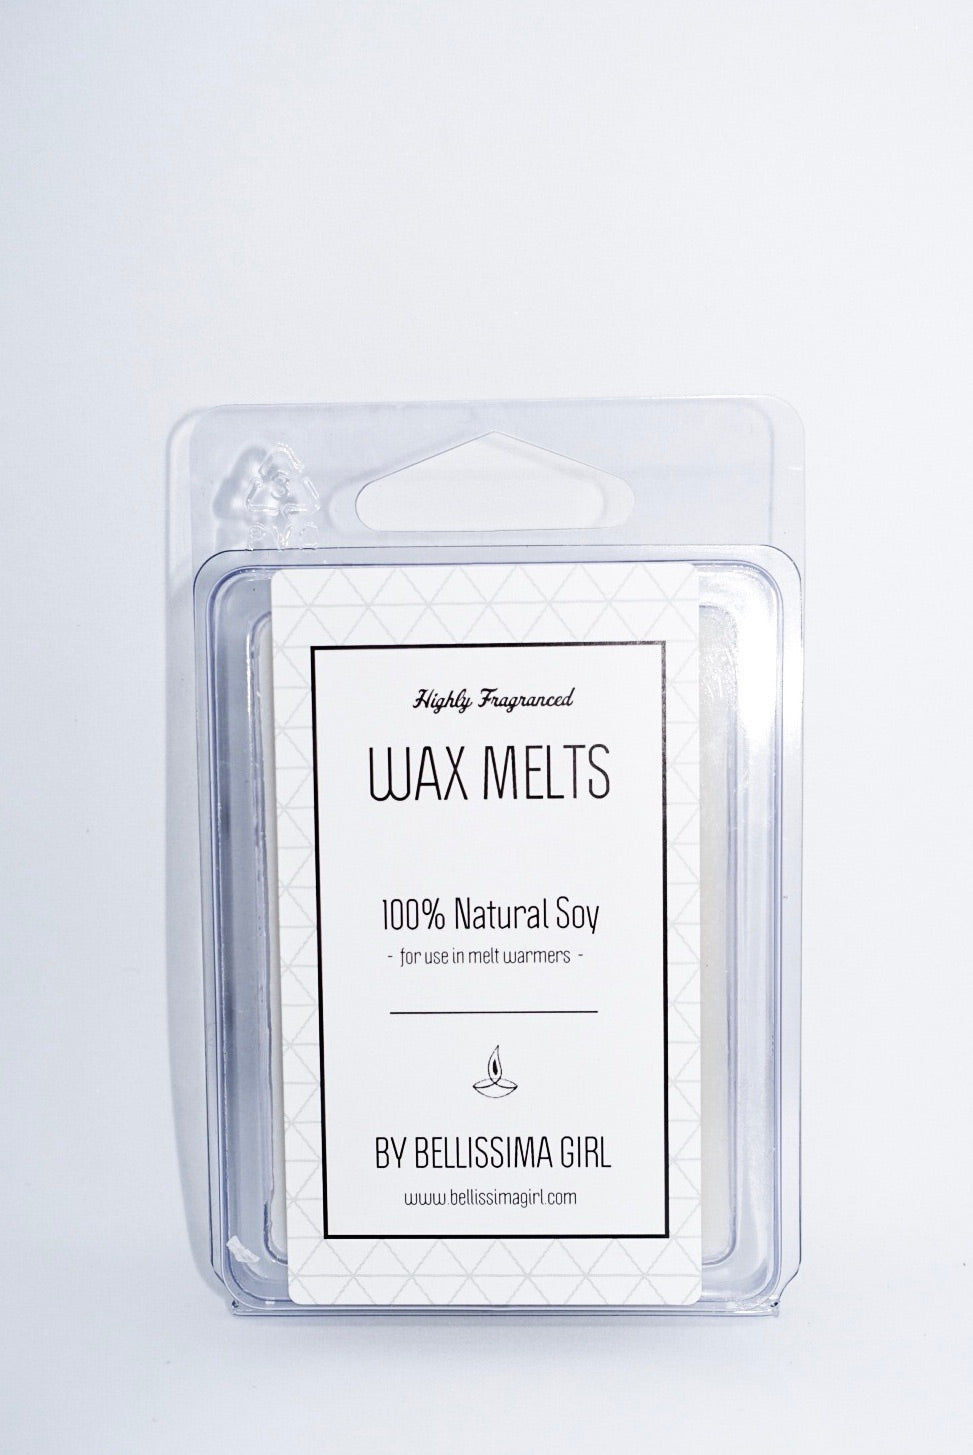 Egyptian Musk Wax Melt 74g - Plush Boutique